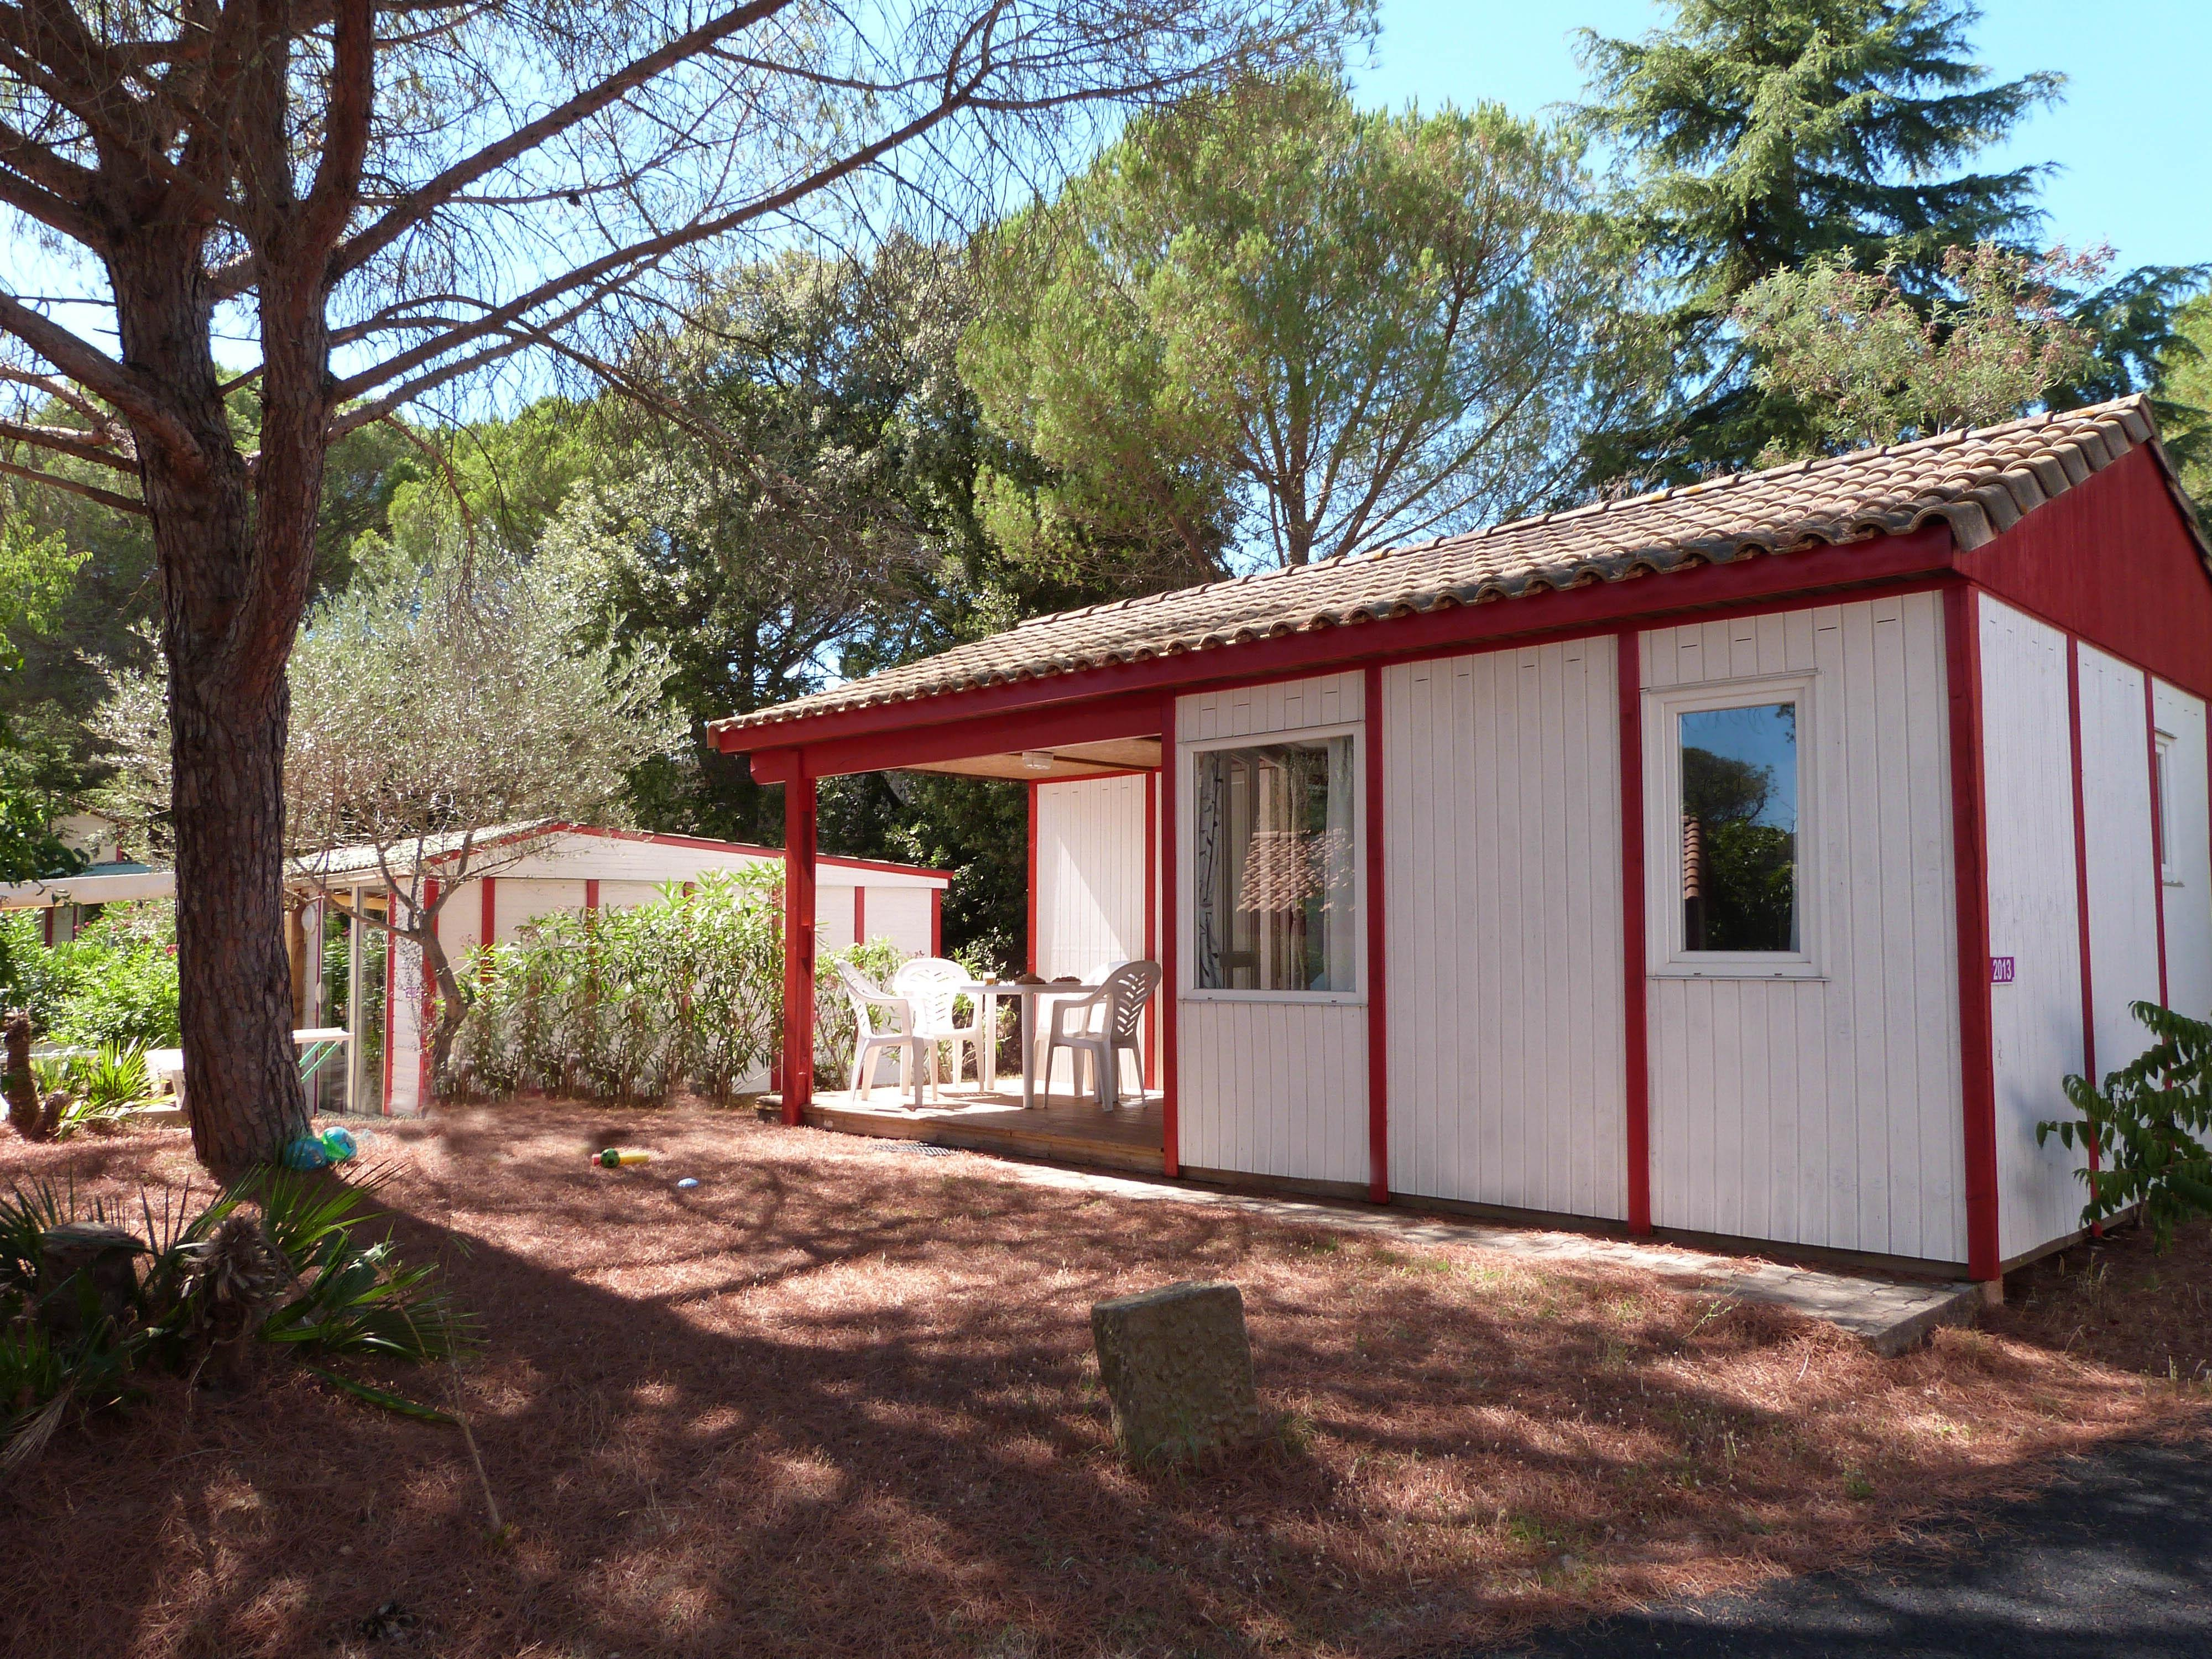 Location - Chalet Kinal 6 Pers. + 1 Place Véhicule. Eco - Camping Les Cigales